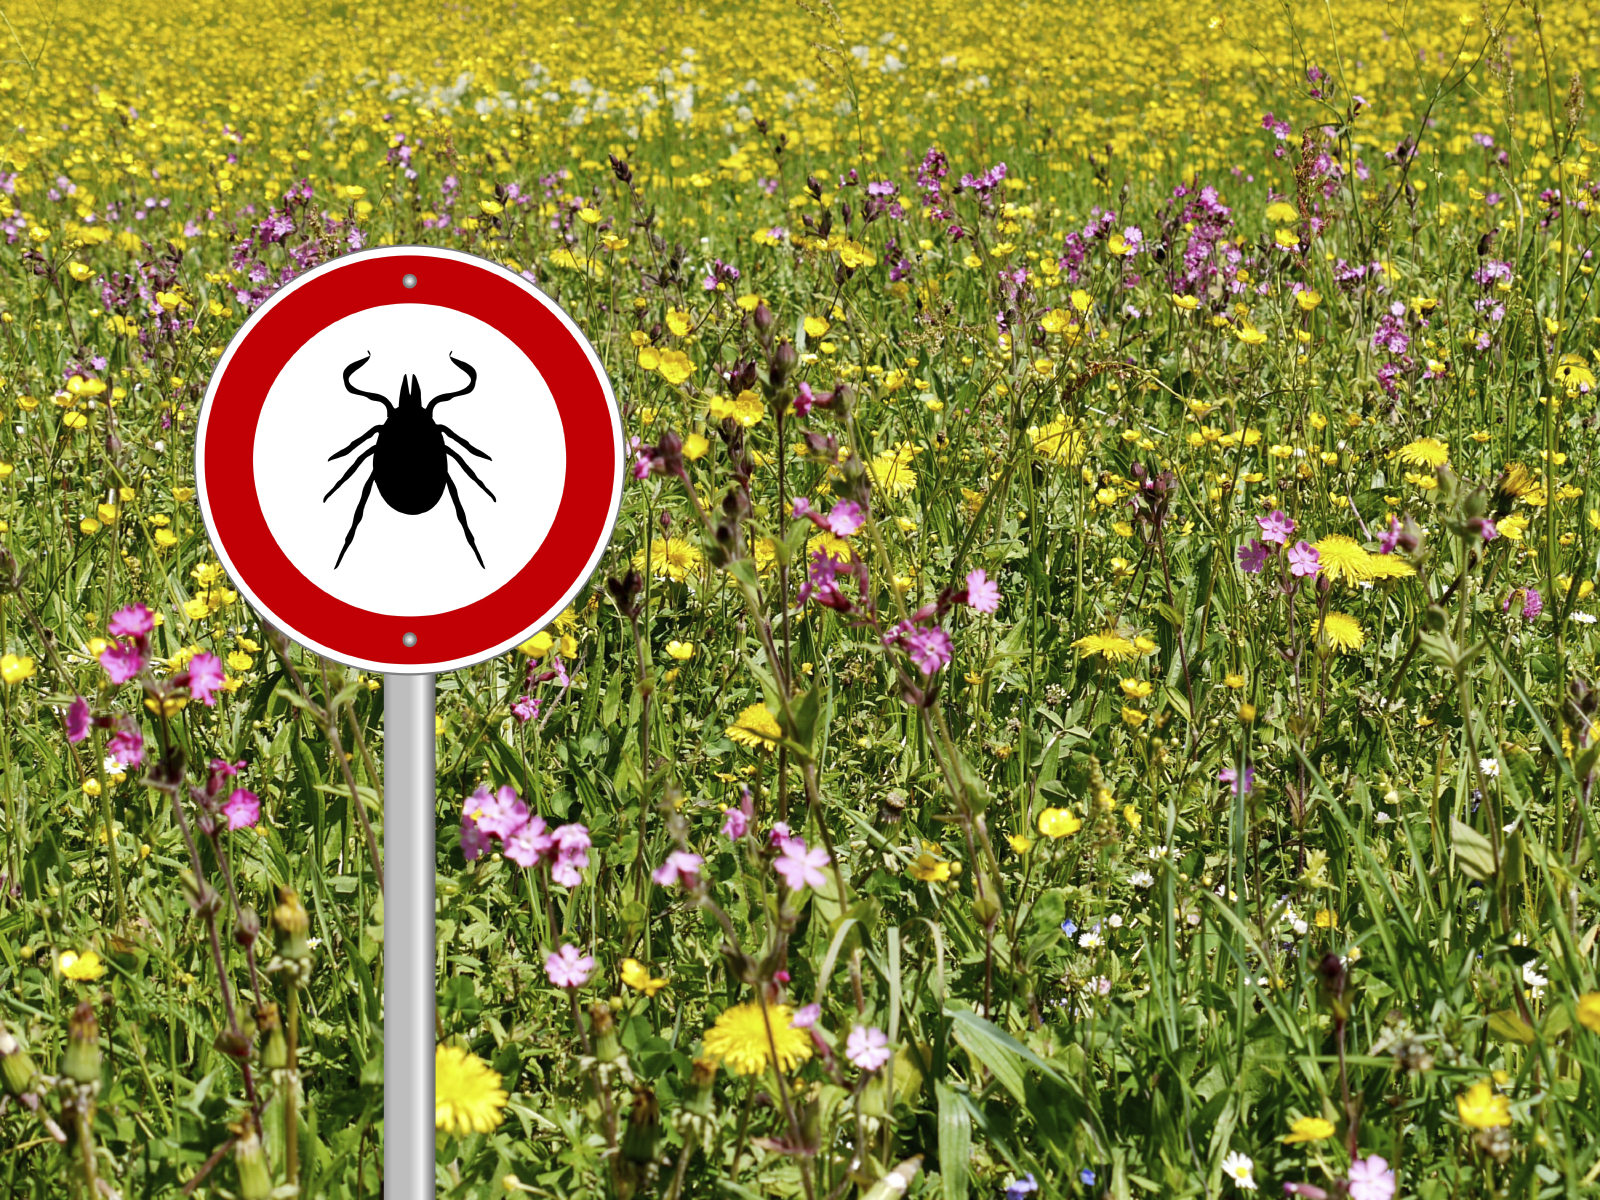 Lyme Disease: A Hard Road to Diagnosis and Recovery